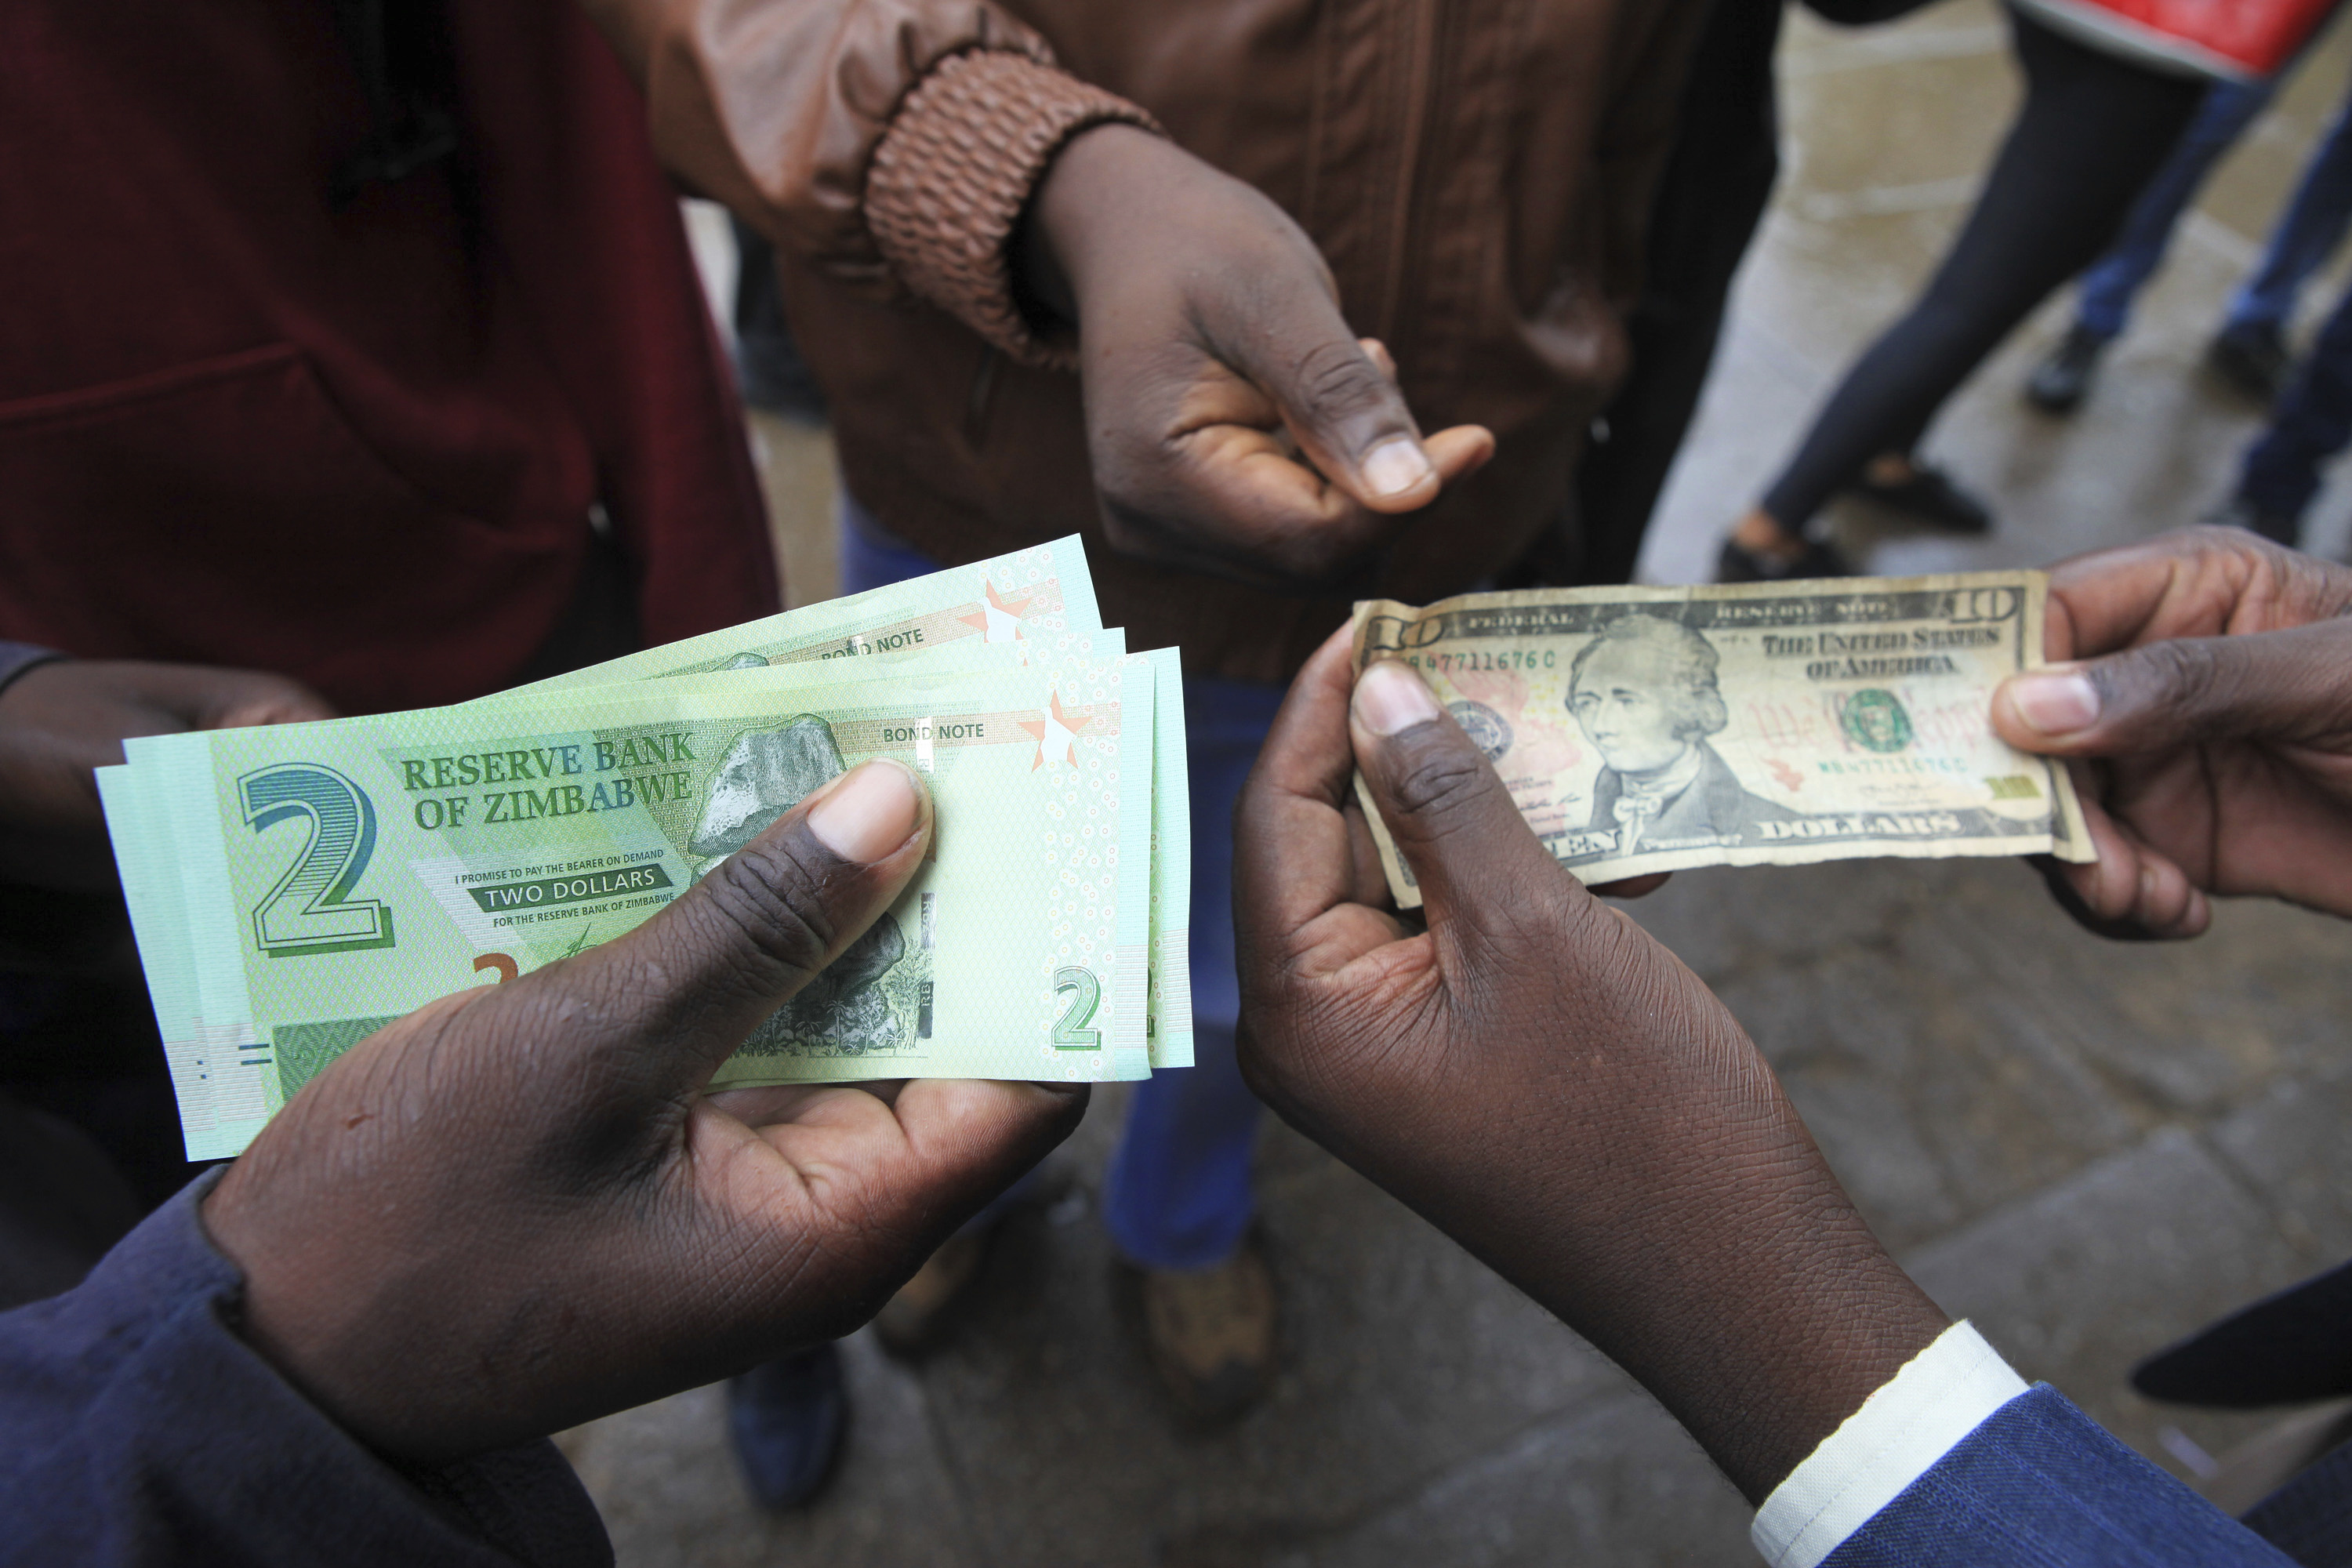 Zimbabweans compare the new note with the US dollar note following the introduction of new notes by the Reserve Bank of Zimbabwe in Harare, Monday, Nov, 28, 2016. The Southern African nation has rolled out a new currency for the first time since 2009 in hopes of easing biting shortages of the US dollar. Banks across the country started issuing the new currency called bond notes, Monday. (AP Photo/Tsvangirayi Mukwazhi)